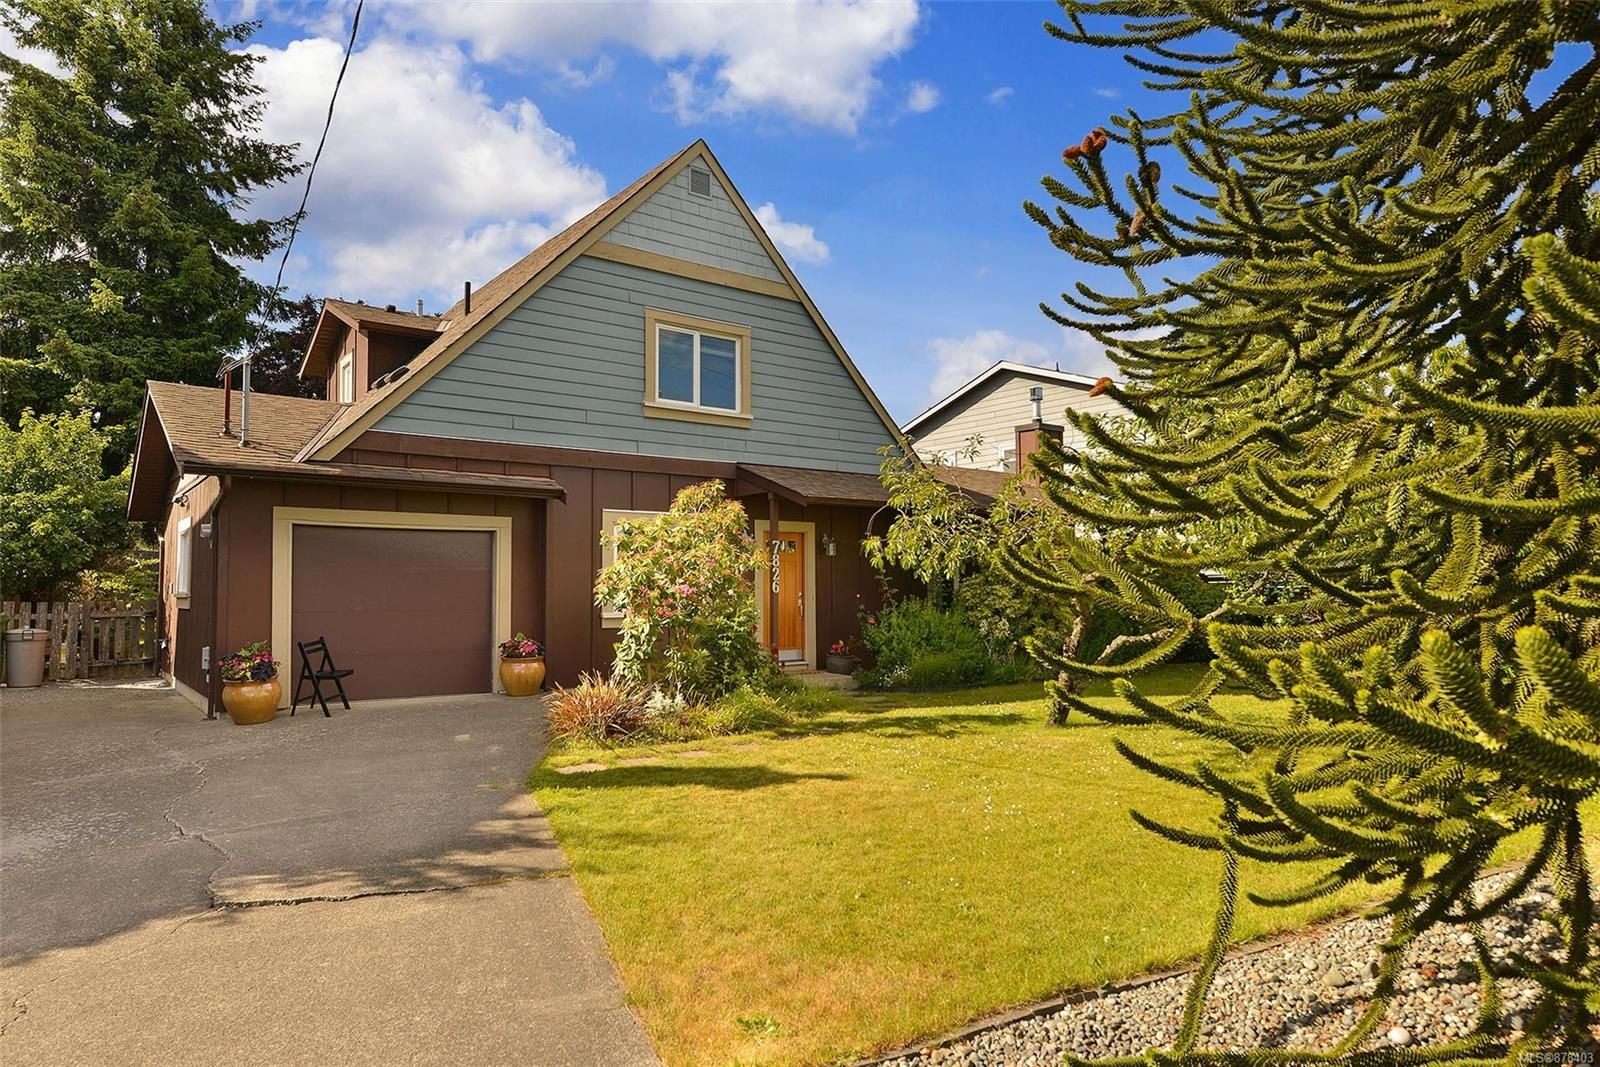 Main Photo: 7826 Wallace Dr in Central Saanich: CS Saanichton House for sale : MLS®# 878403